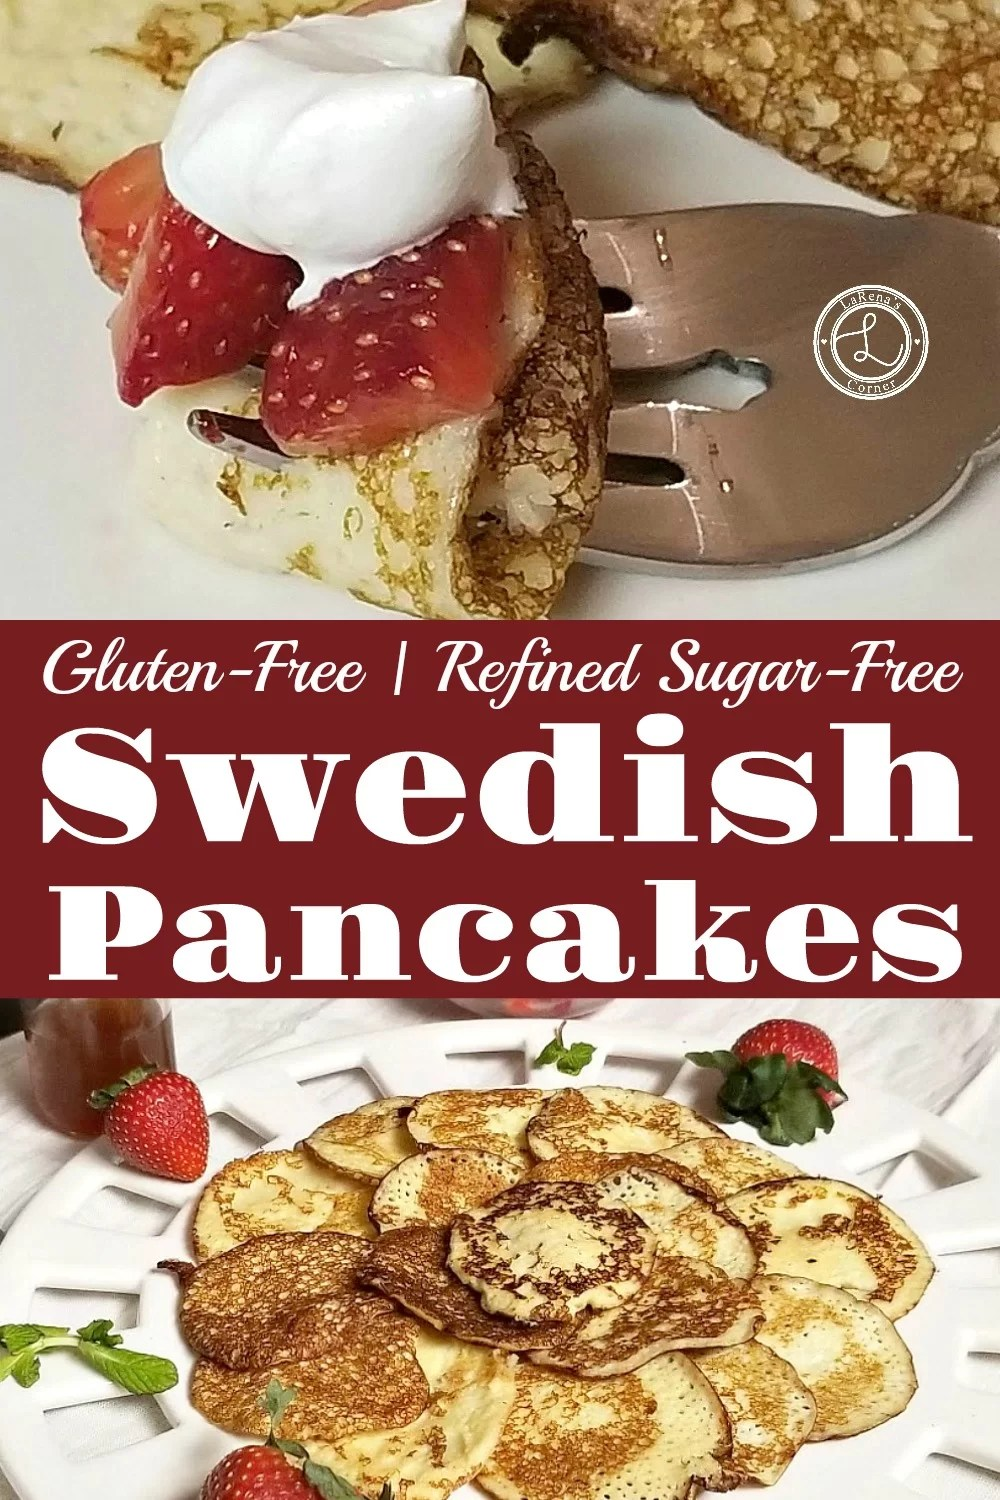 Swedish Pancakes on a platter surrounded by stawberries and mint. Second photo of a bite of pancake on a fork with strawberries and whipped cream.